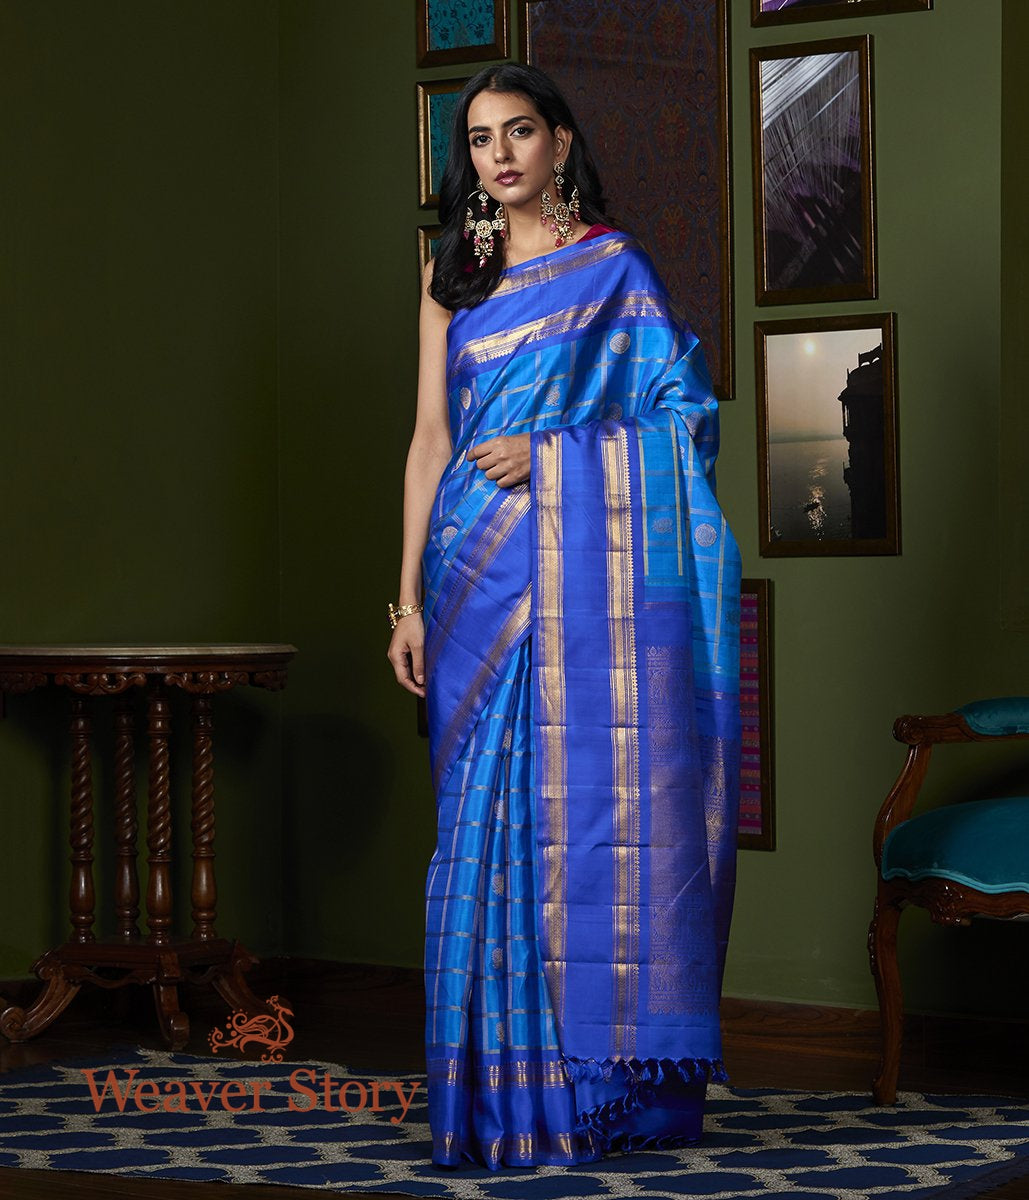 Handwoven Cobalt Blue Real Zari Kanjivaram Saree with Checks